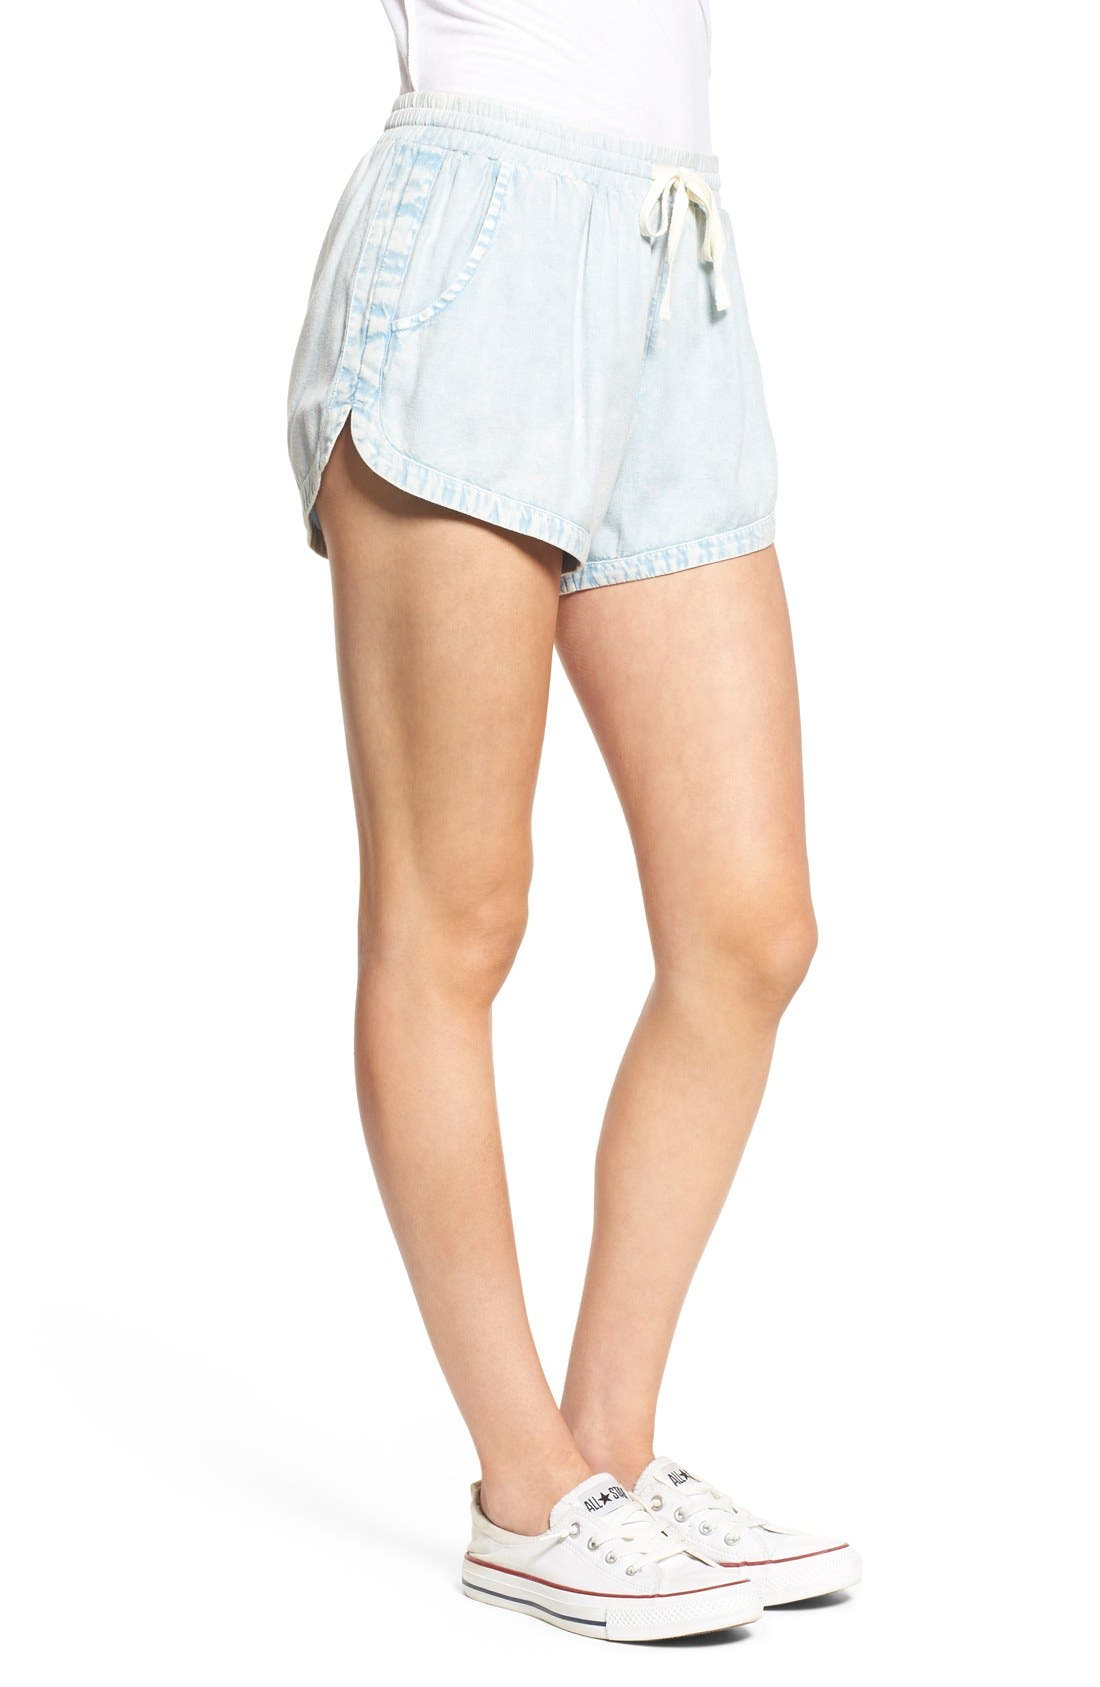 'Road Trippin' Shorts,                             Alternate thumbnail 2, color,                             CHAMBRAY BLUE